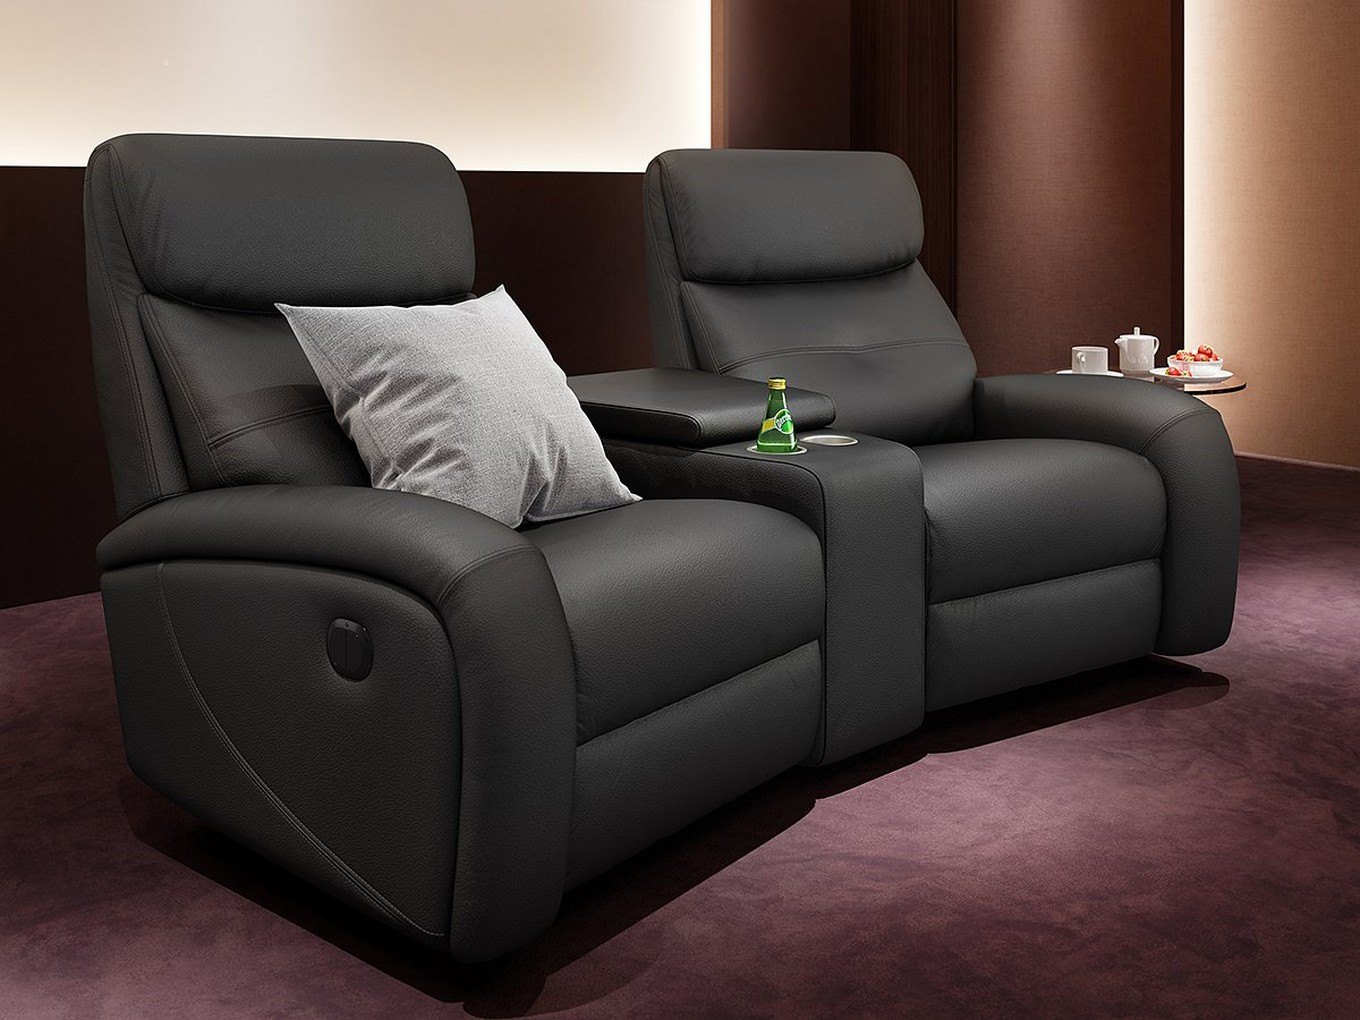 heim kinosofa leder garnitur relax couch tv sofa kino. Black Bedroom Furniture Sets. Home Design Ideas